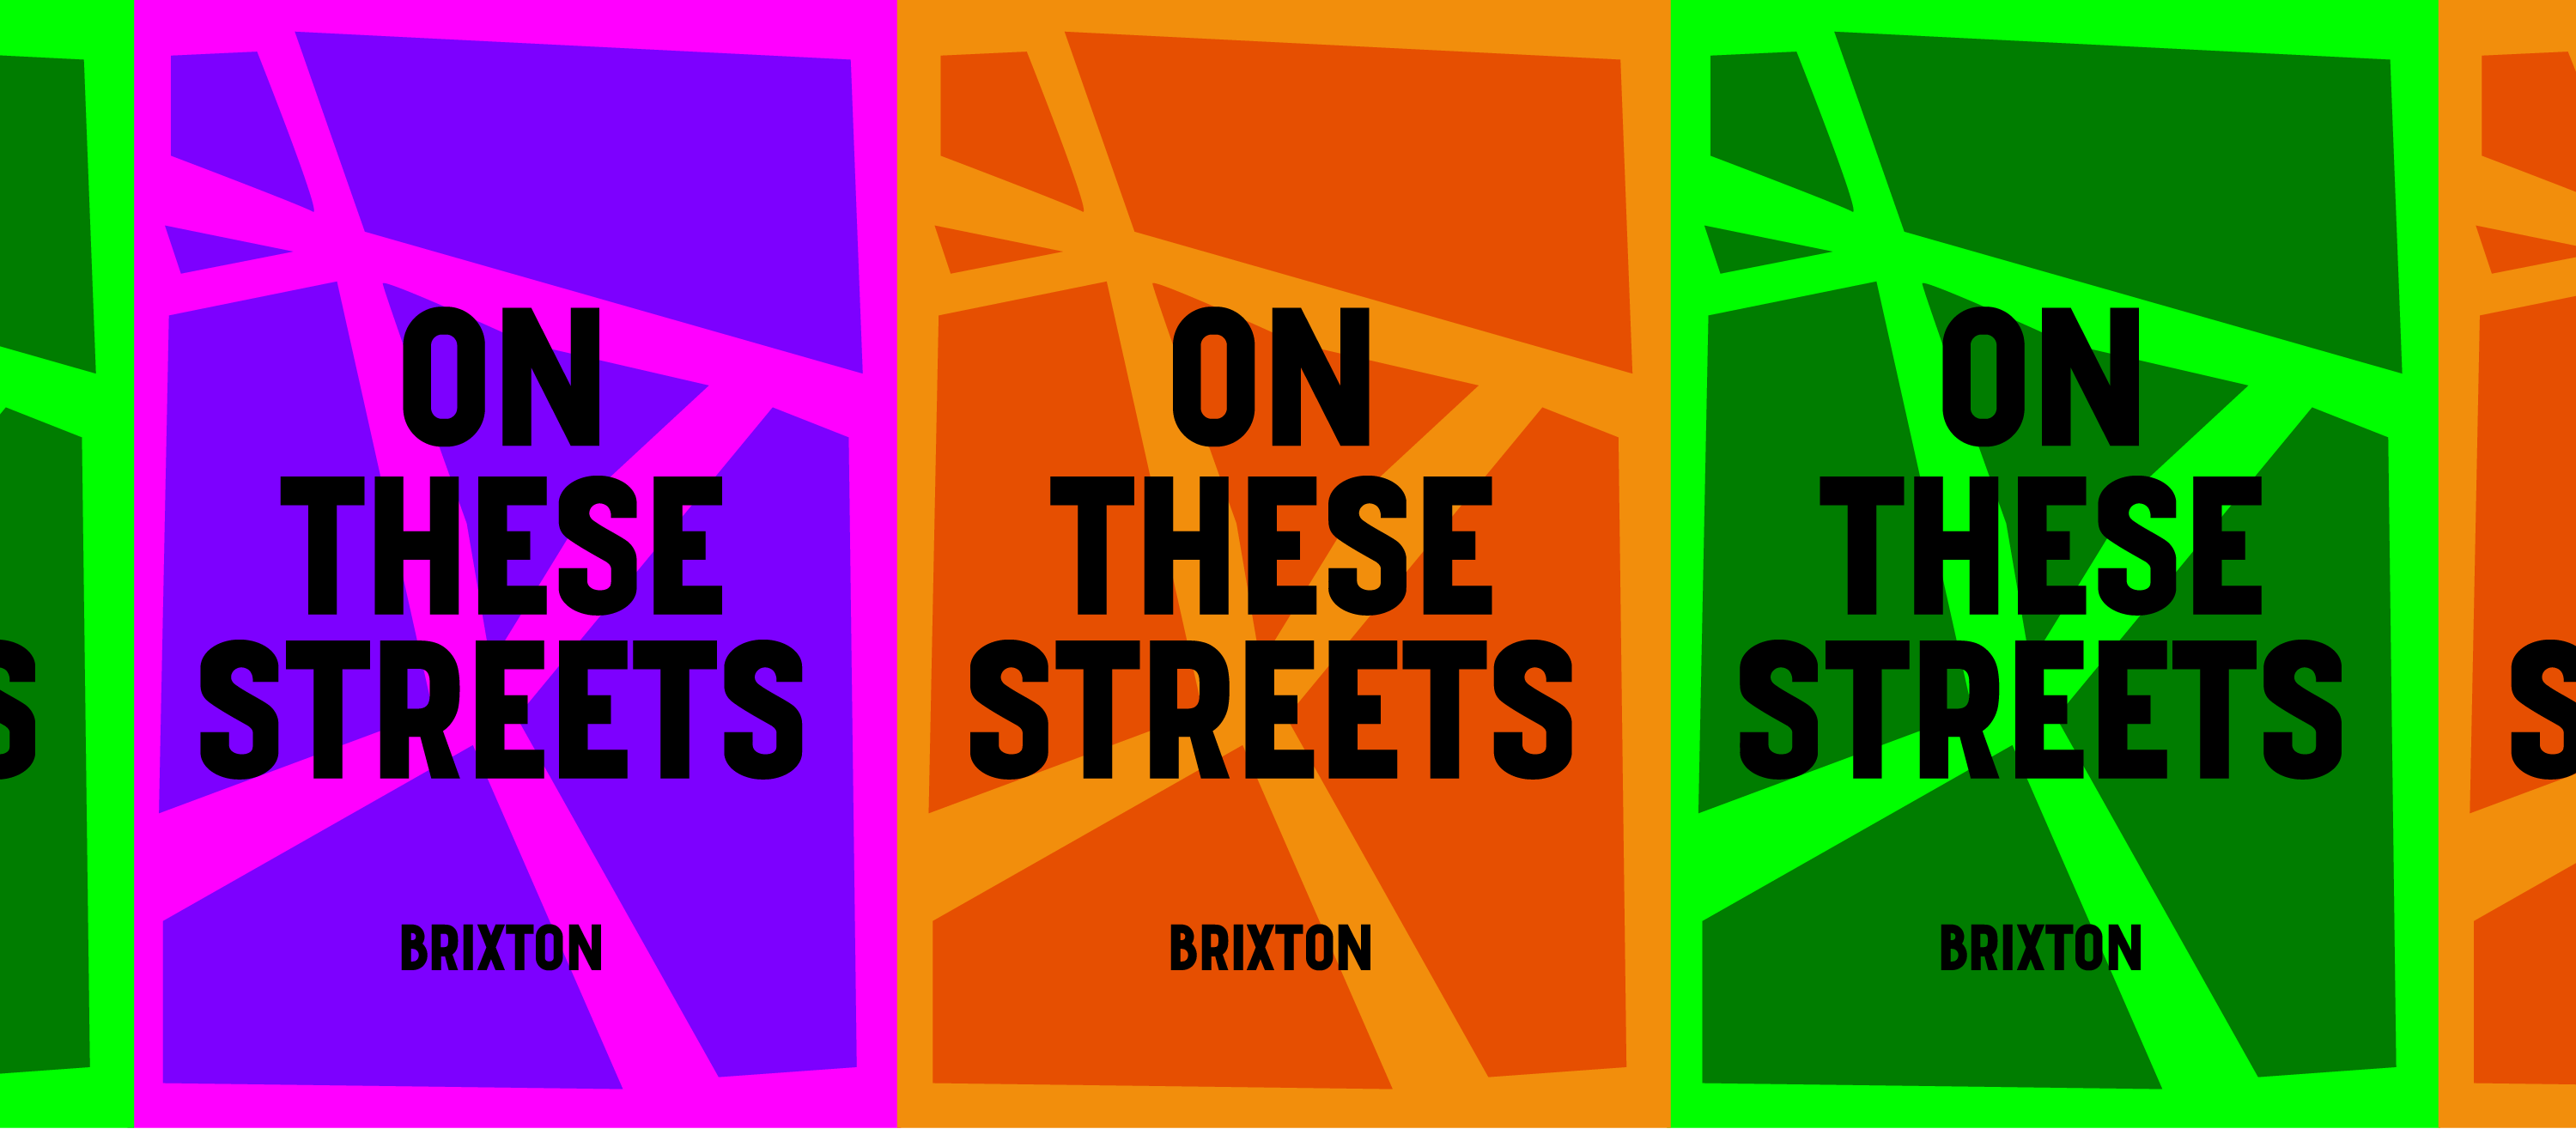 """Stylised graphic map of the distinctive Brixton triangle, overliad with the words """"ON THESE STREETS"""" in bold black capitals Windrush font. There are three varieties: bright pink and purple, two tone orange and neon and forest green which repeat like flyposters on a wall or hoarding."""